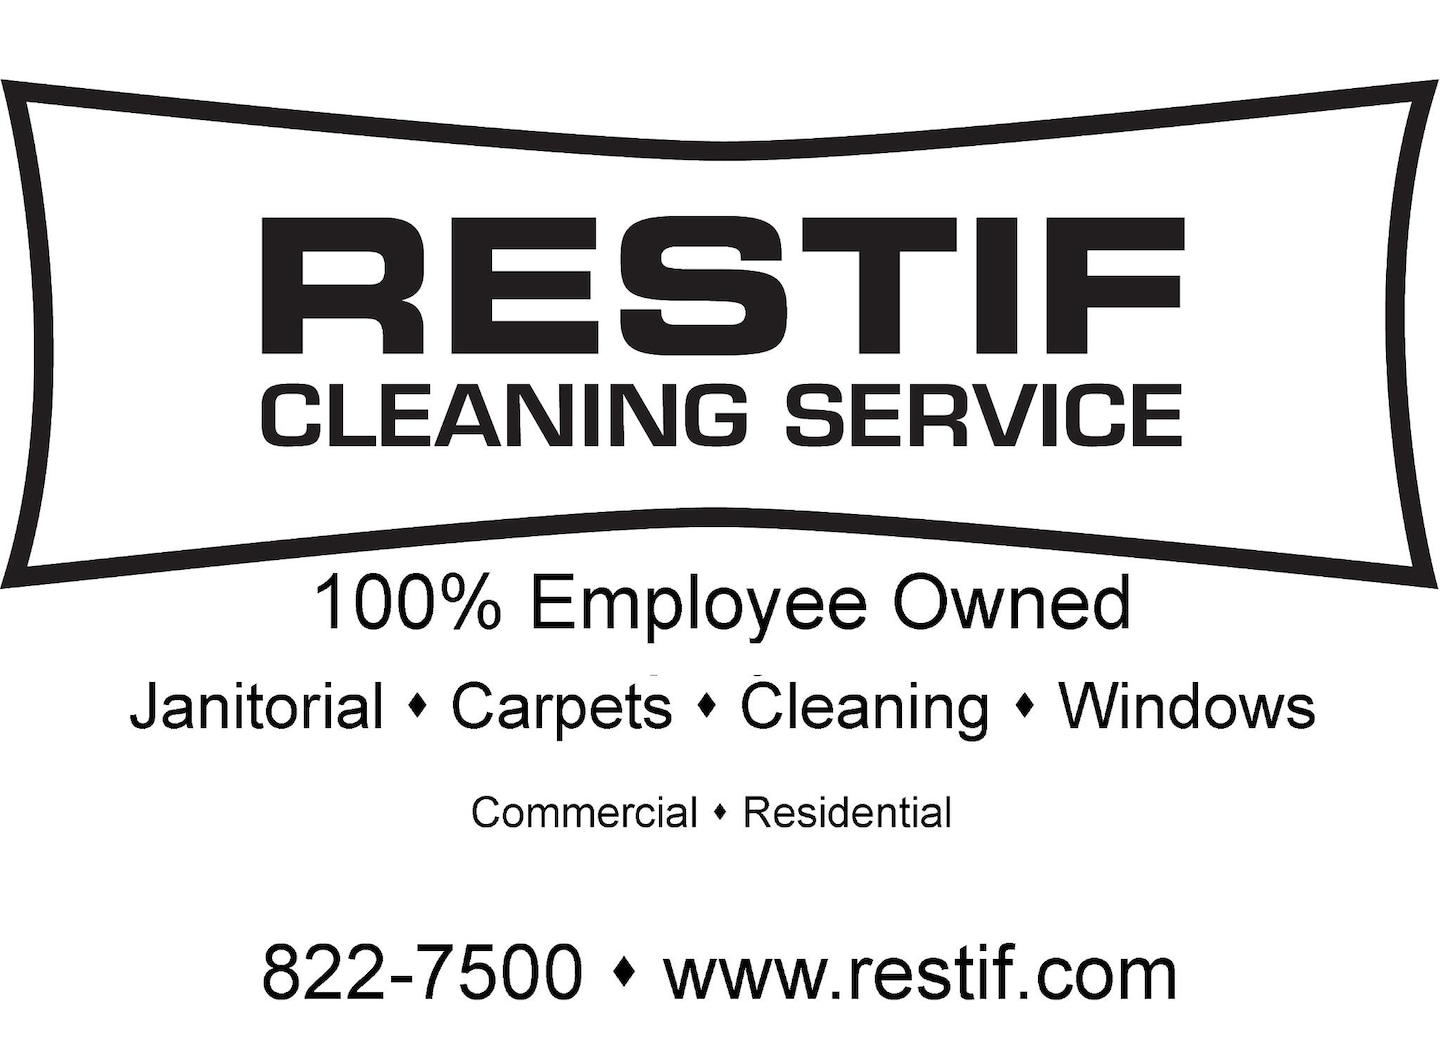 Restif Cleaning Service Cooperative, Inc.